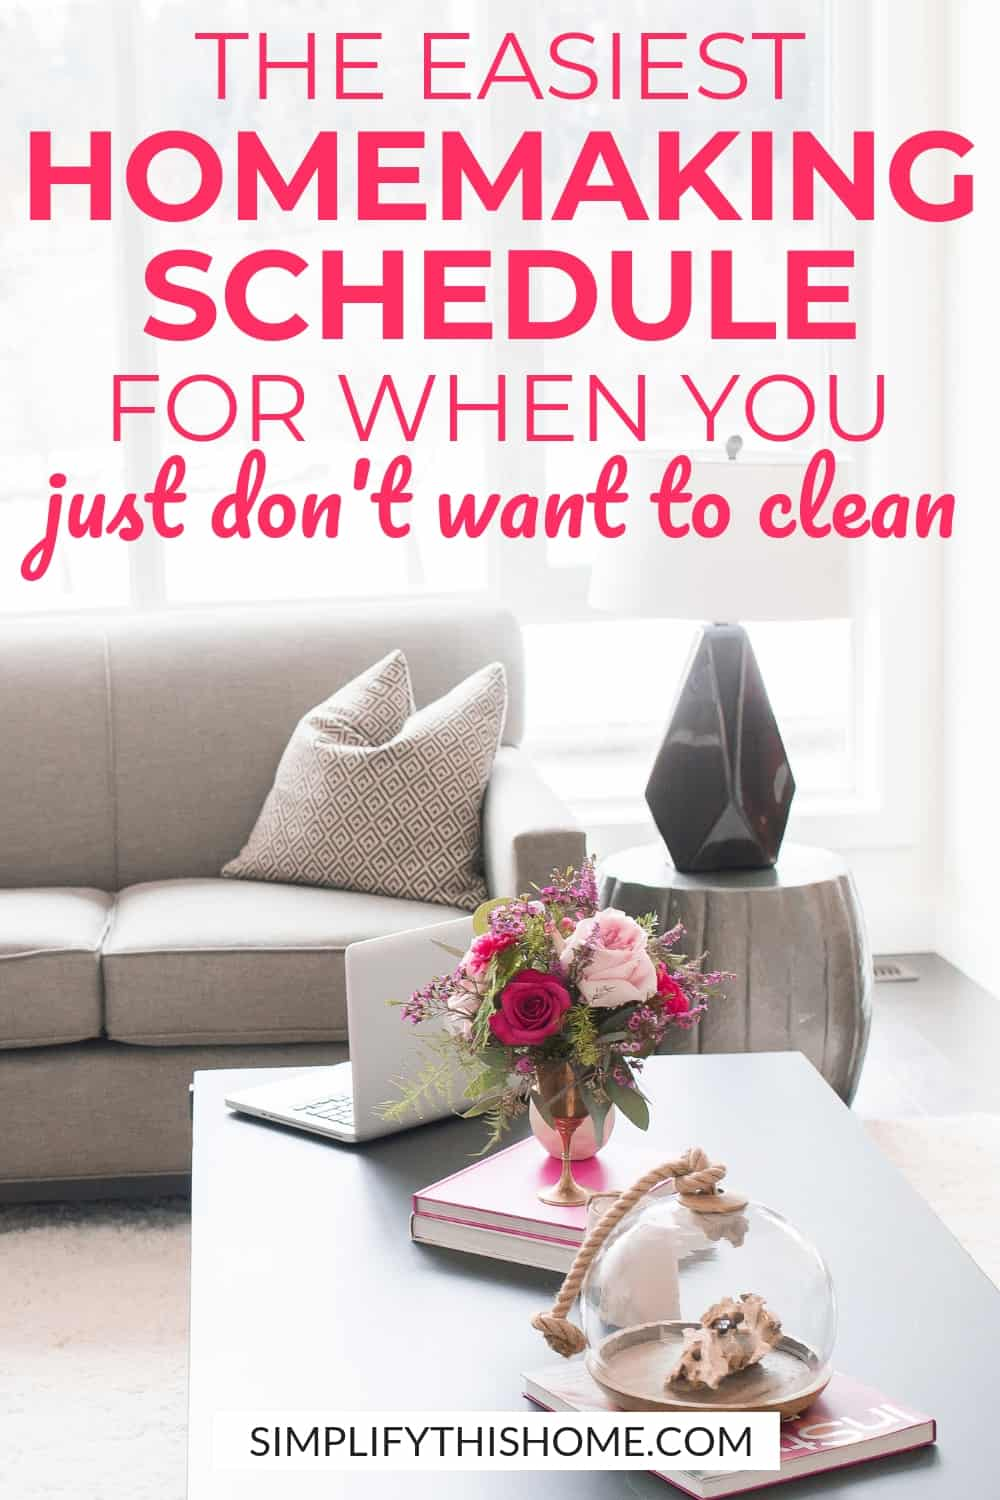 The easiest homemaking schedule for when you just don't want to clean! This printable cleaning checklist will keep your home tidy and running smoothly! | how to keep your house clean | cleaning schedule #cleaning #cleaningtips #printable #freeprintable